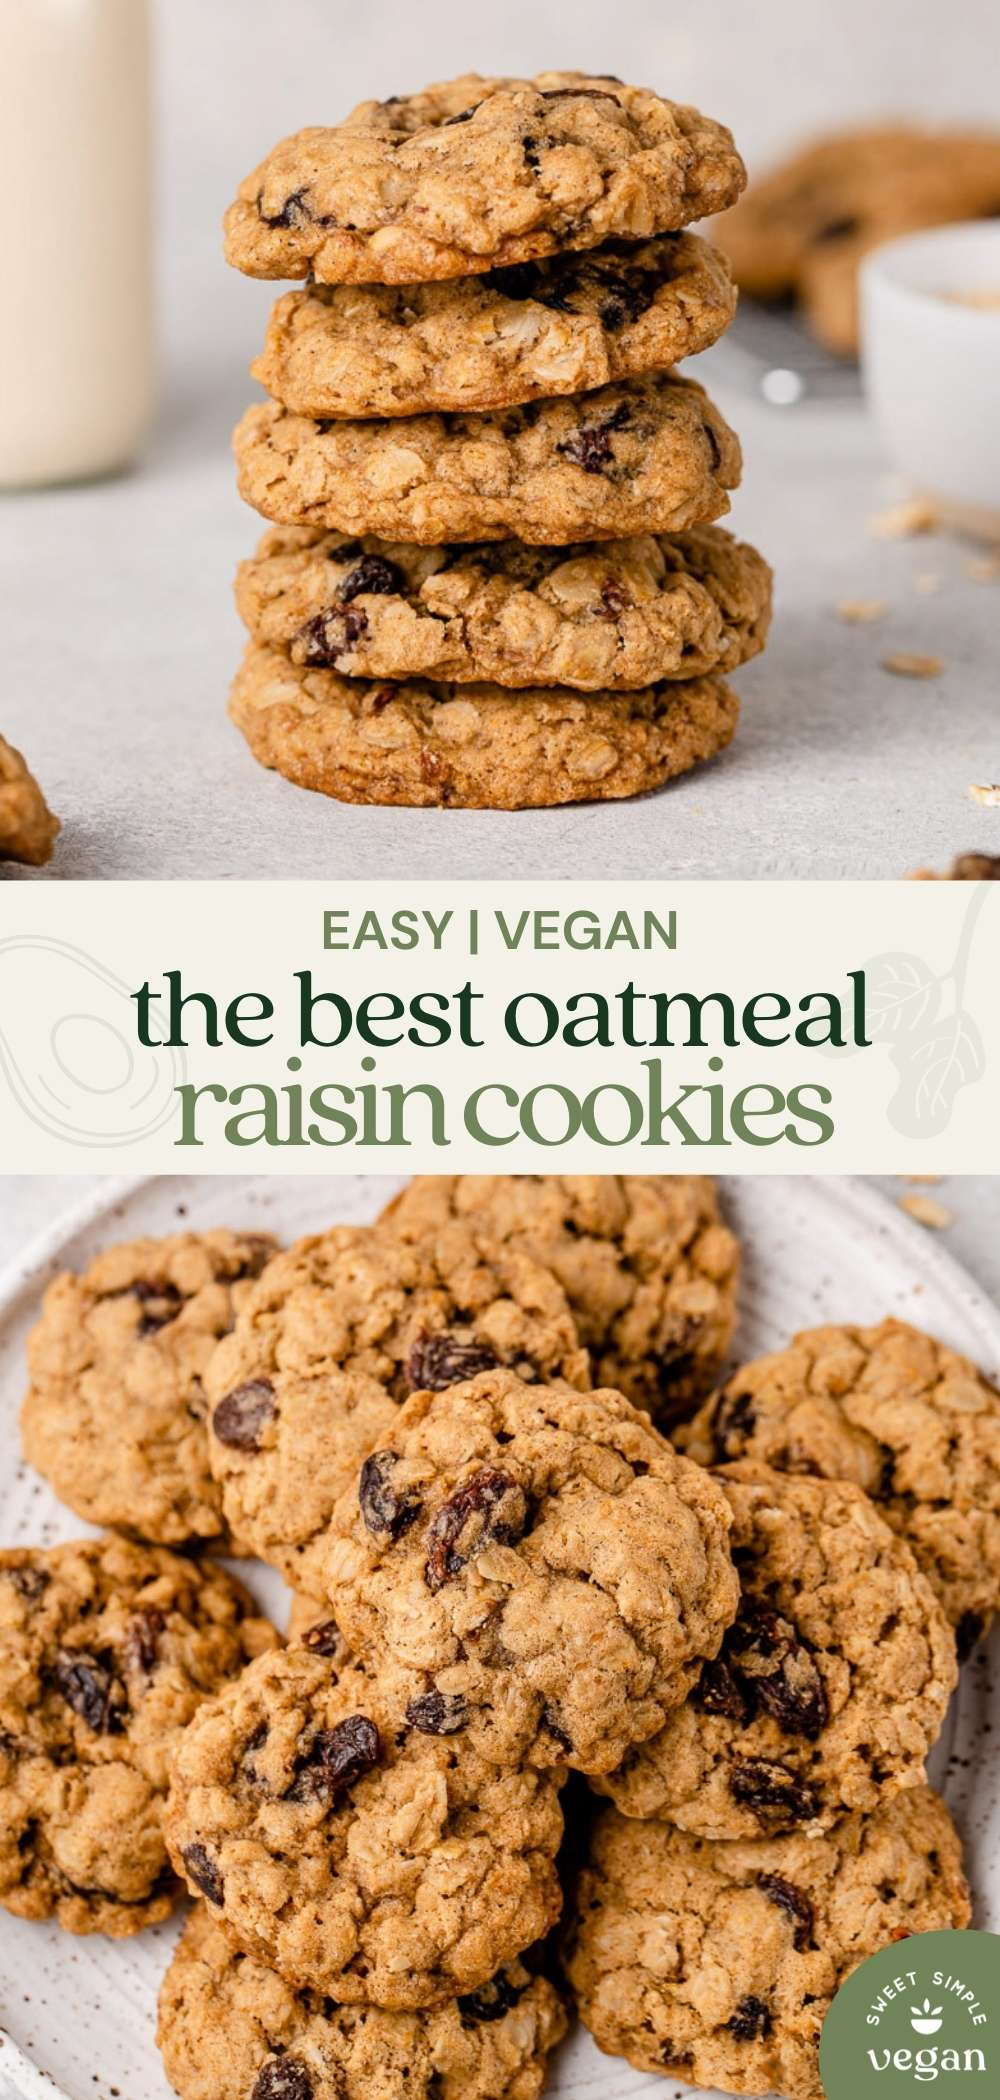 vegan oatmeal raisin cookies on a white plate by sweet simple vegan for Pinterest